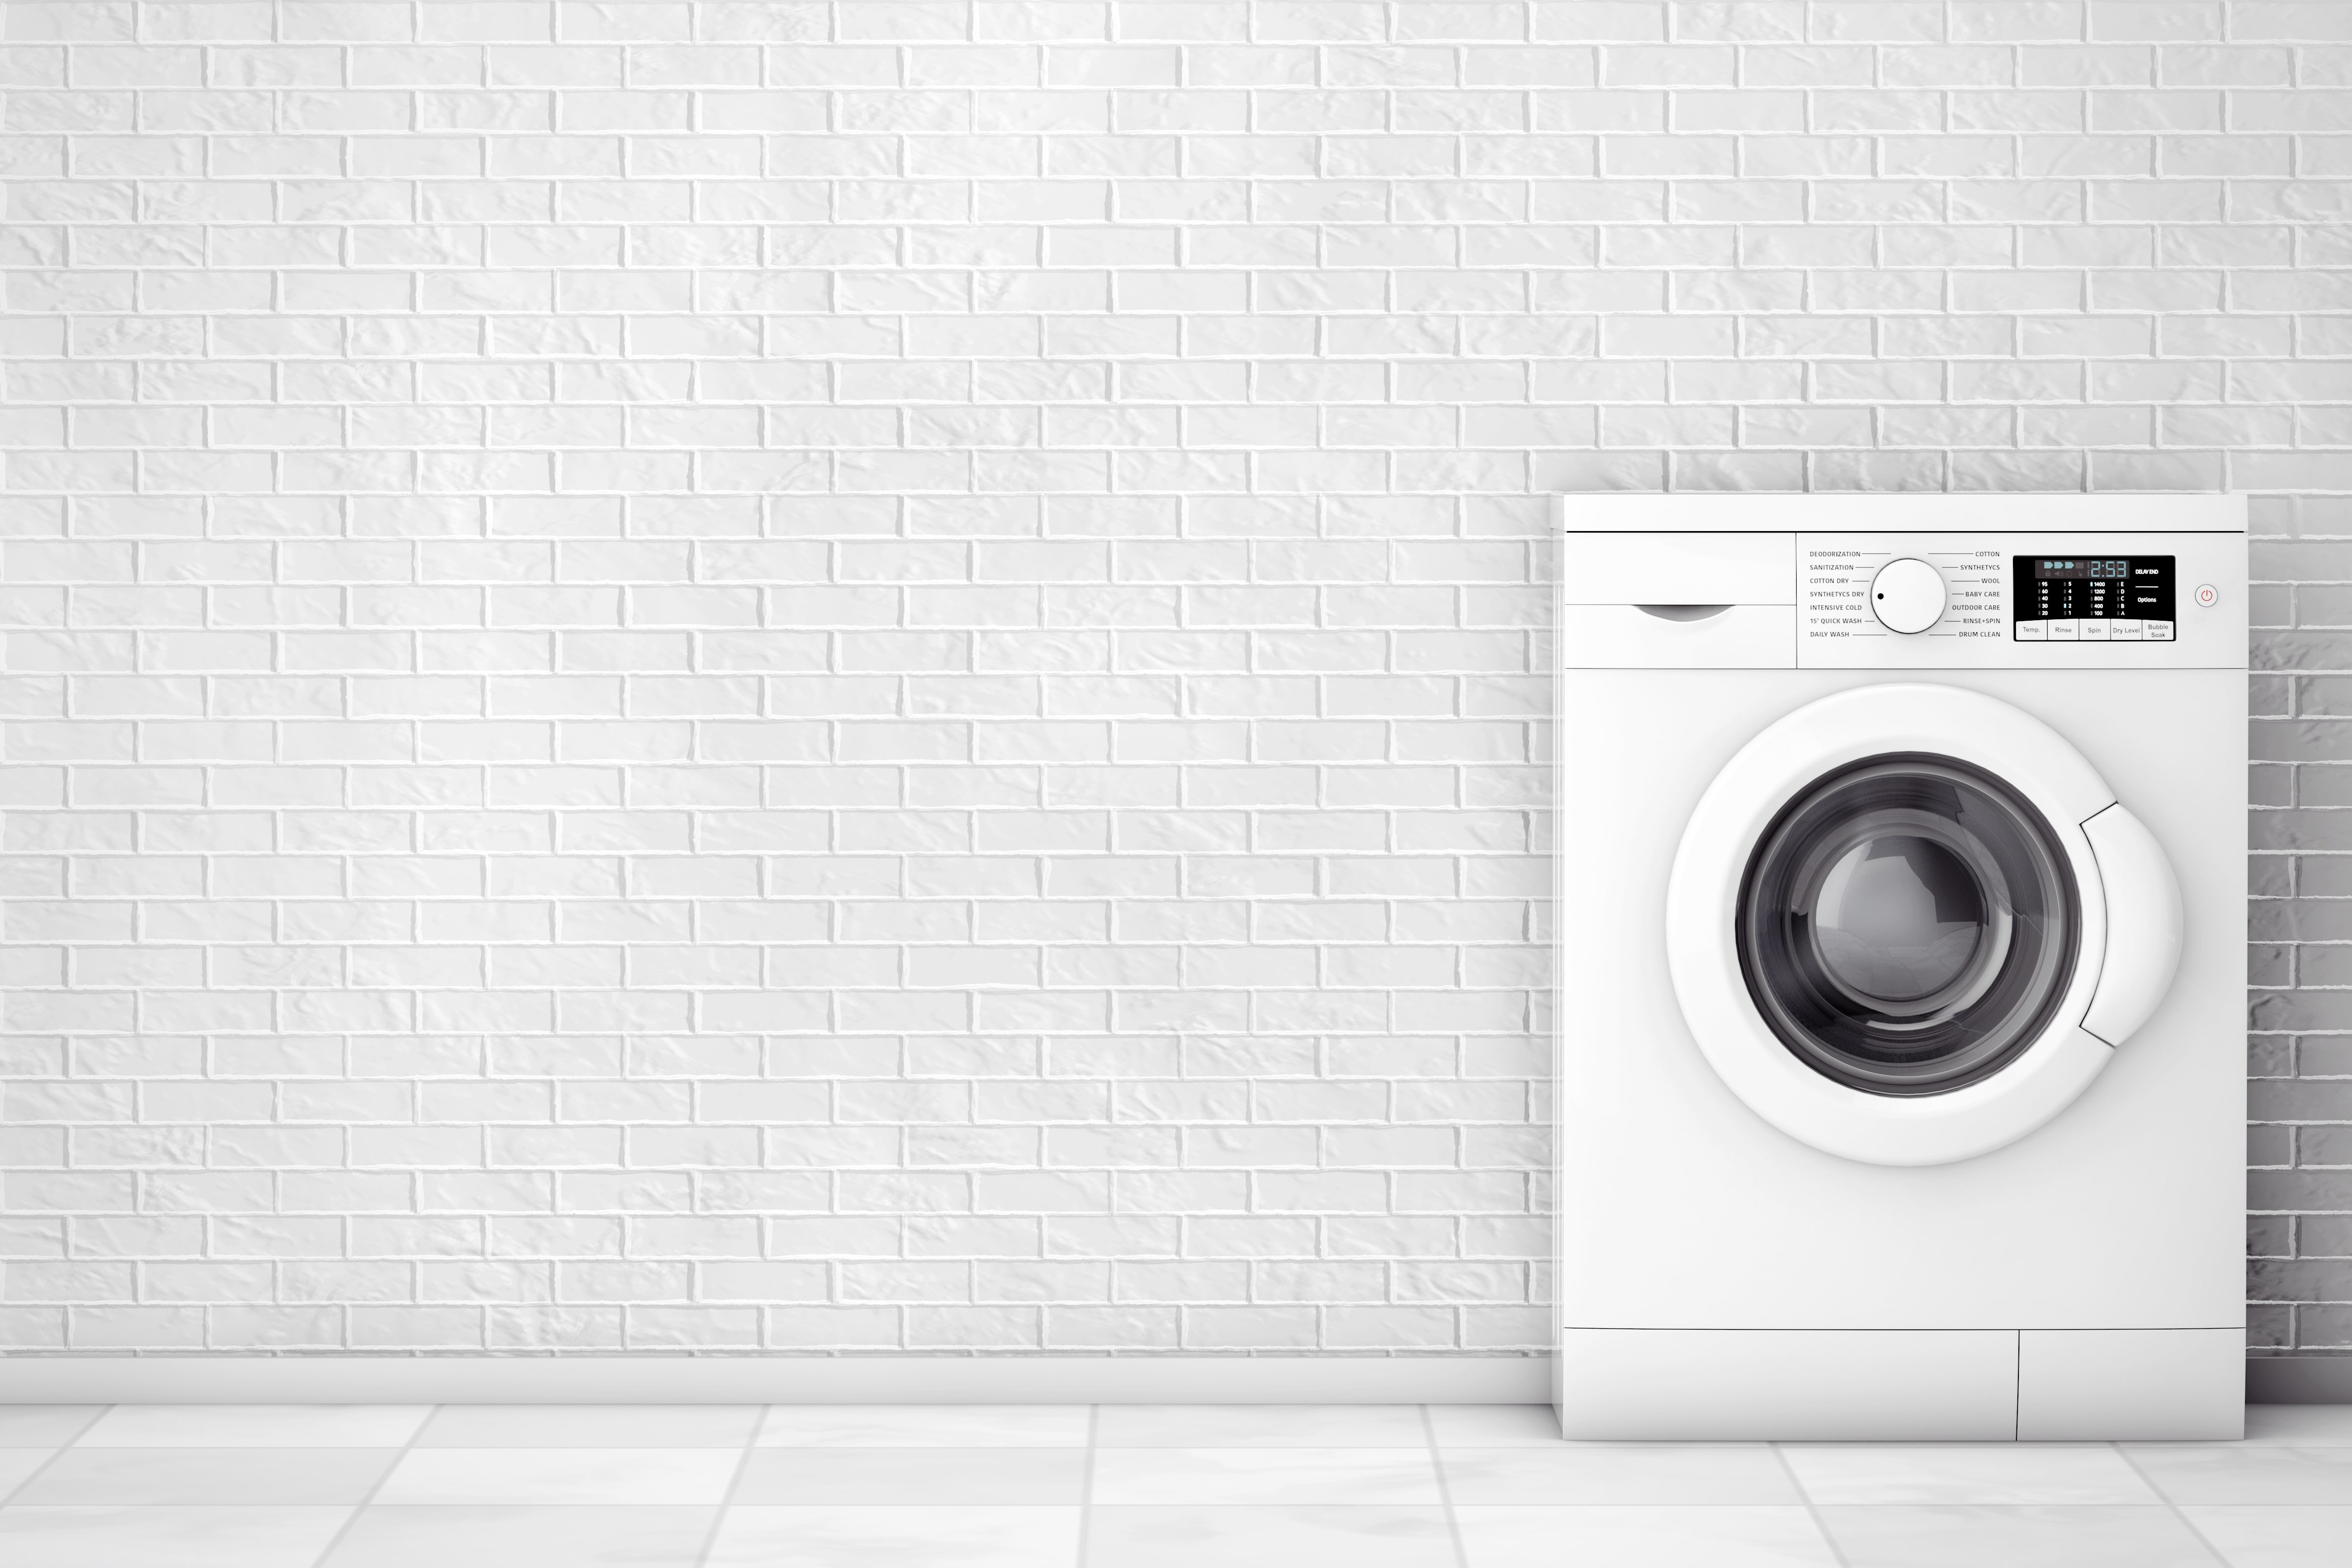 What To Look For In A Commercial Laundry Equipment